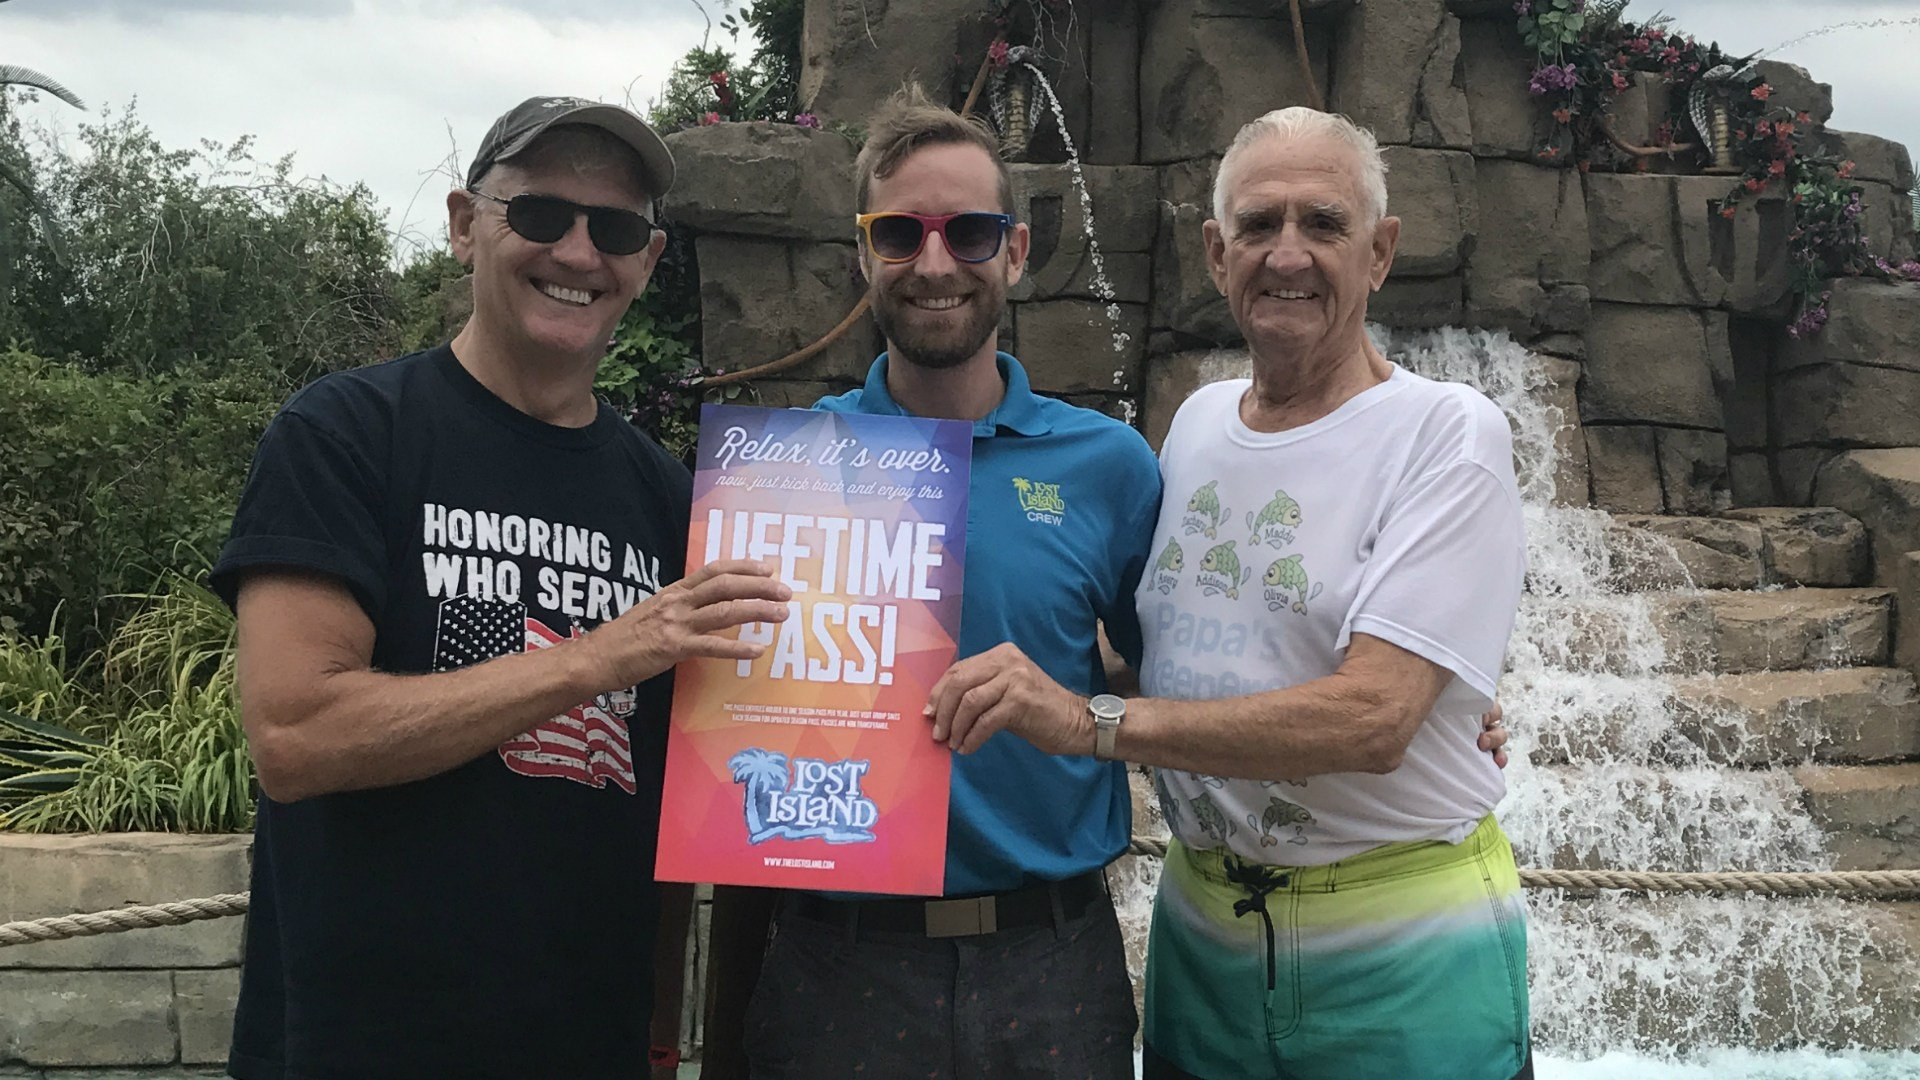 Pete Brustkern (right) passes a Lifetime Season Pass to Randy Miller (right) with Lost Island General Manager Eric Bertch (center)